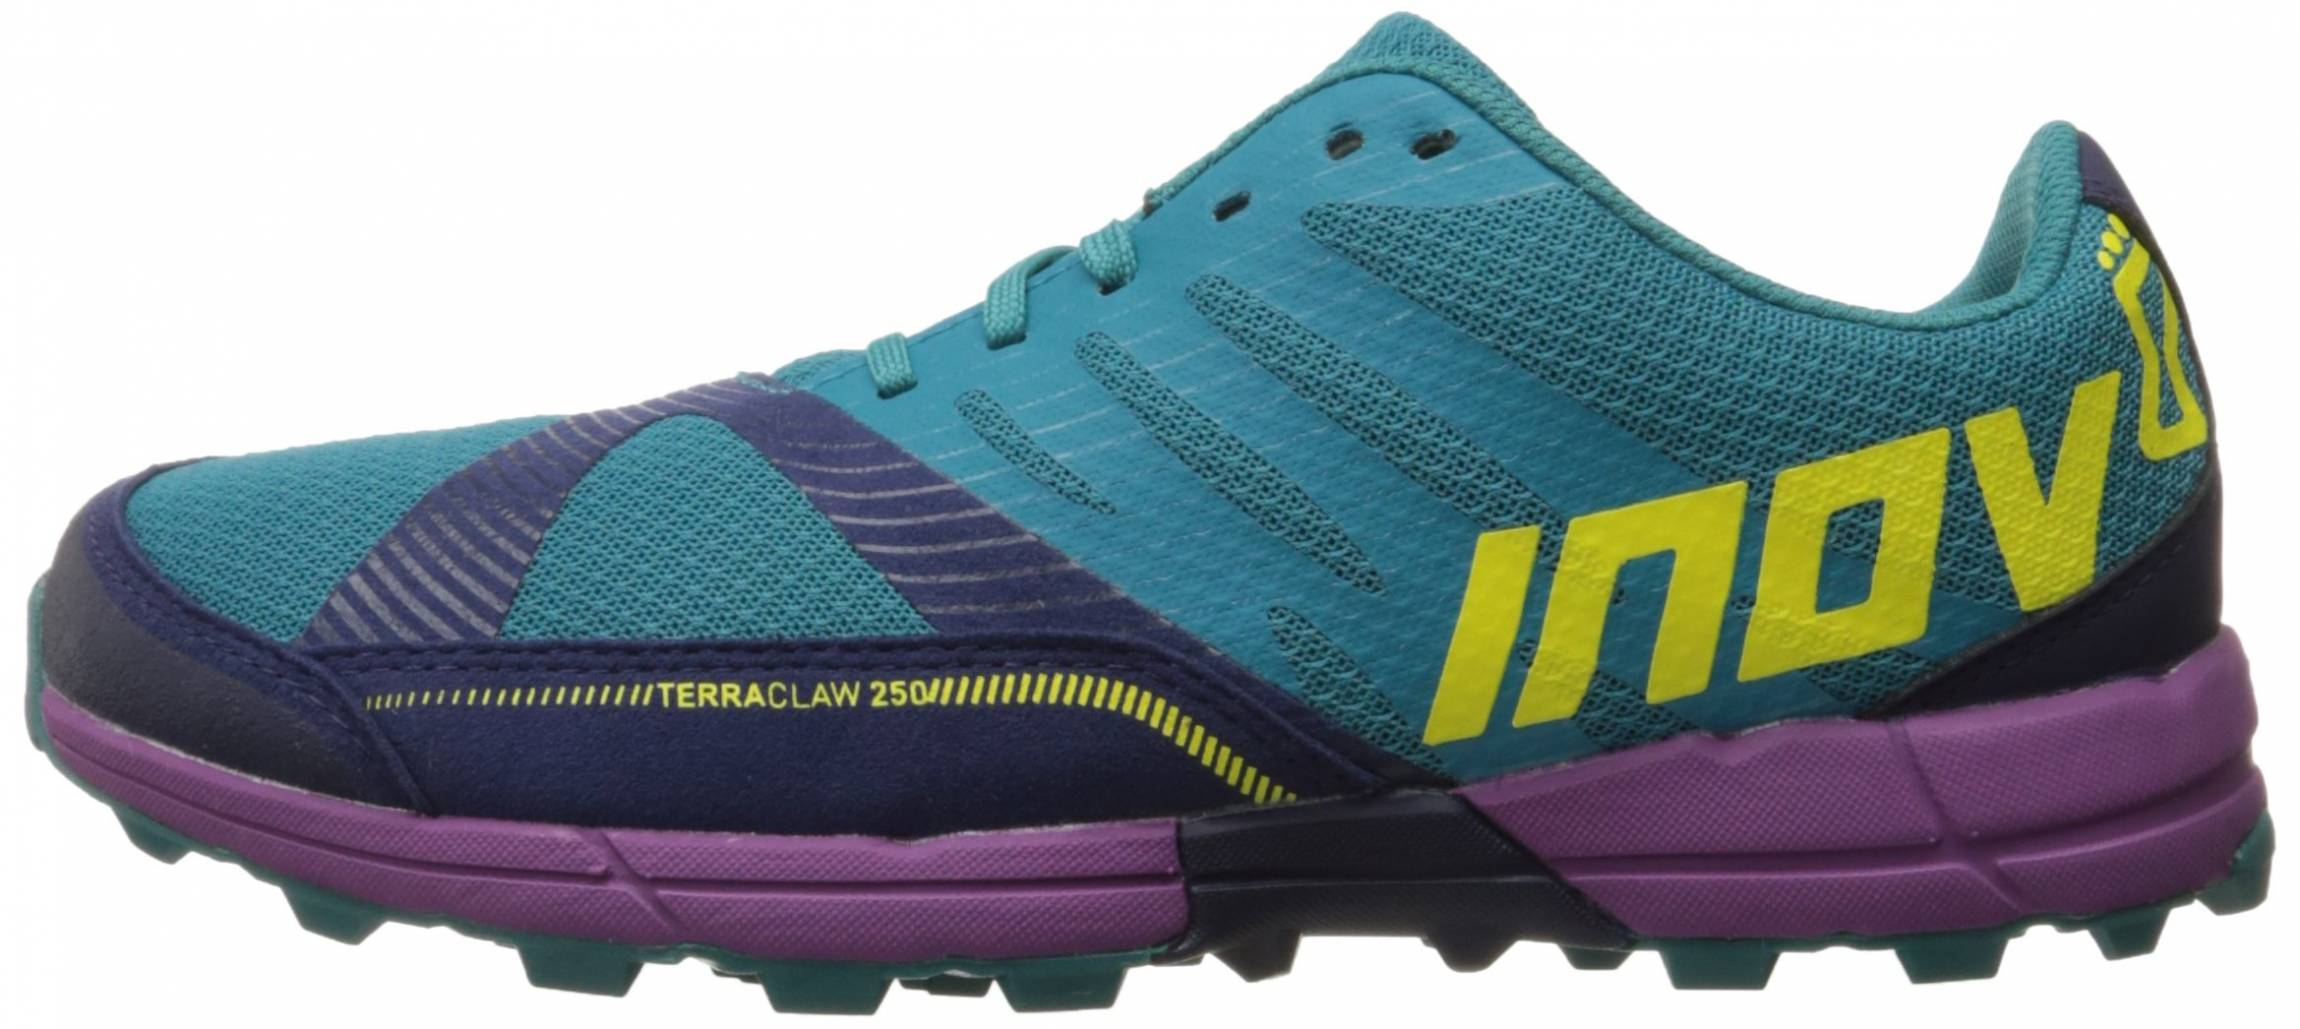 $160 + Review of Inov-8 Terraclaw 250